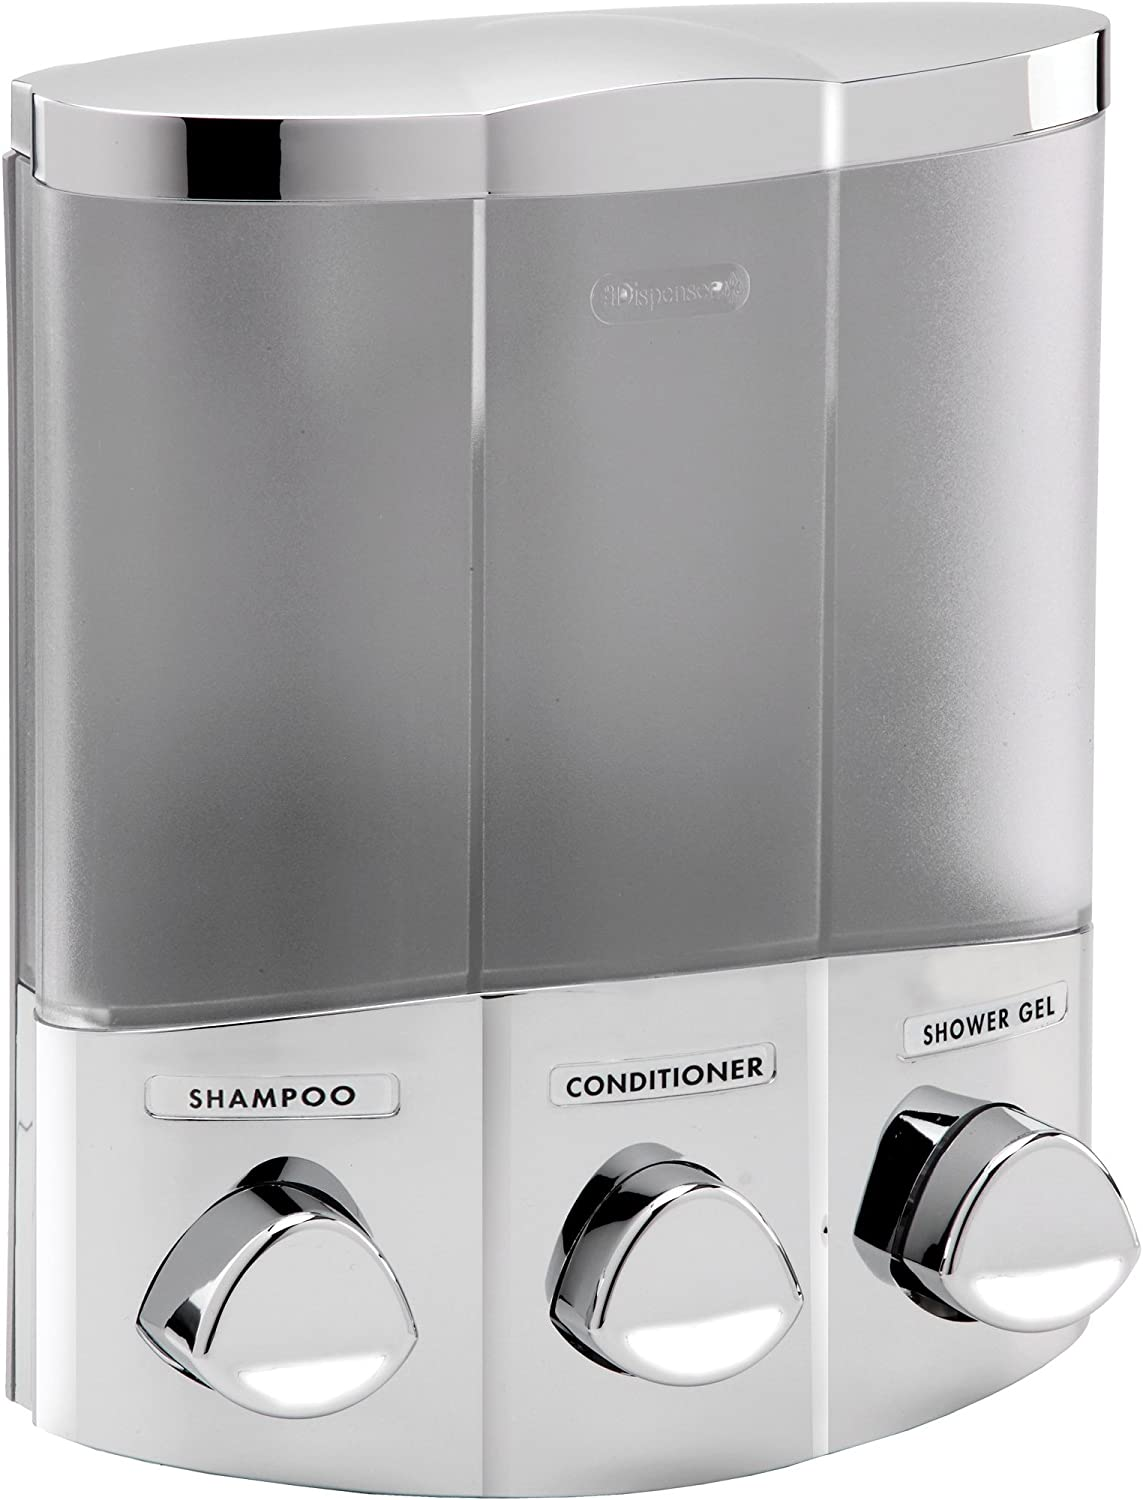 Better Living Products 76354 Euro Series TRIO 3-Chamber Soap And Shower Dispense